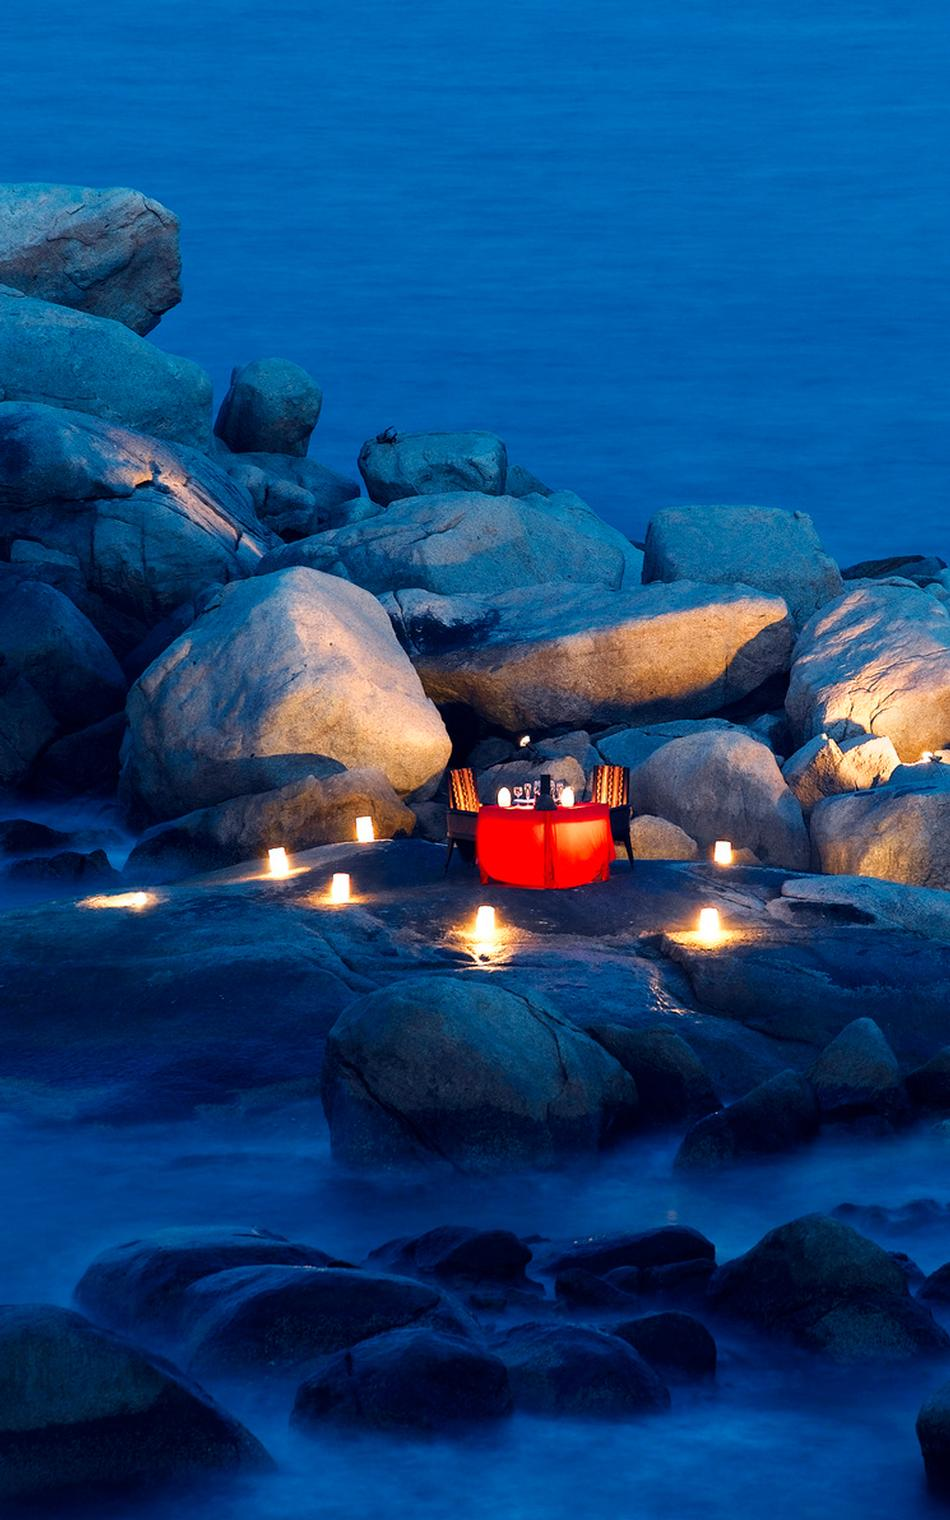 22-lantern-and-candle-lit-dinner-on-a-rocky-shore